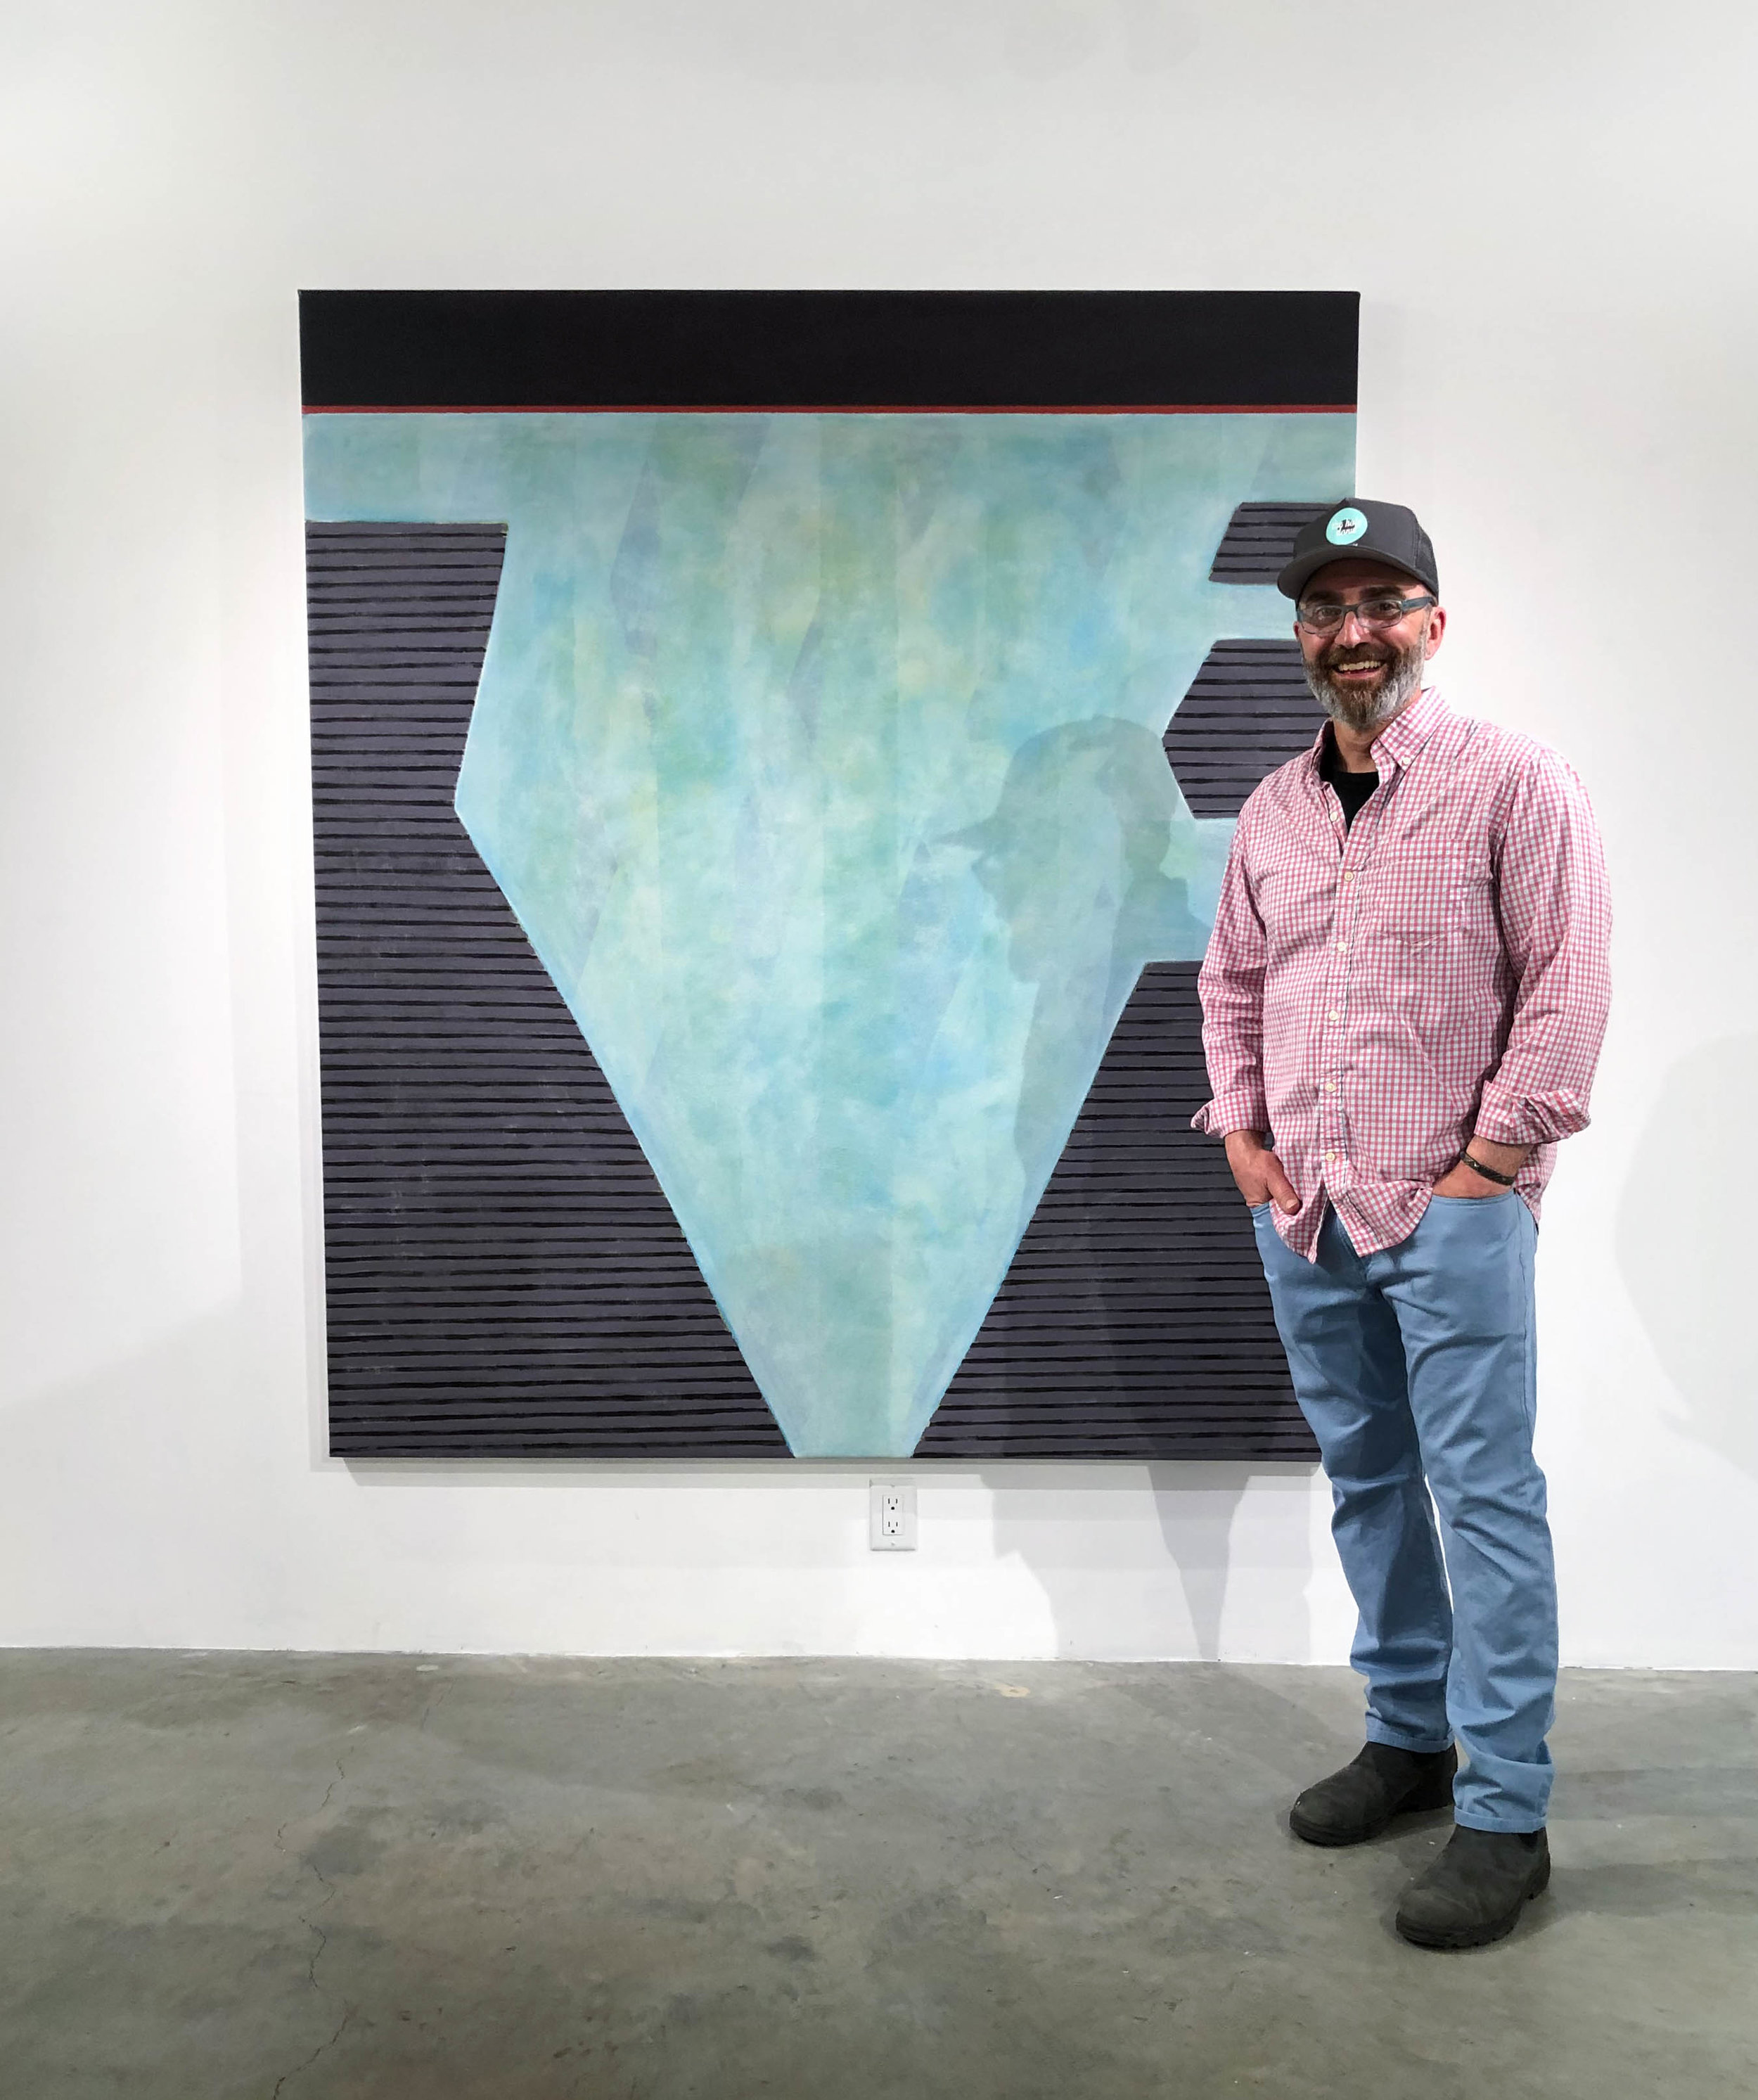 Artist Richard Keen in front of his work at Abigail Ogilvy Gallery: Form Singularity No. 165, Acrylic and Oil on Canvas, 72 x 64 in., 2019